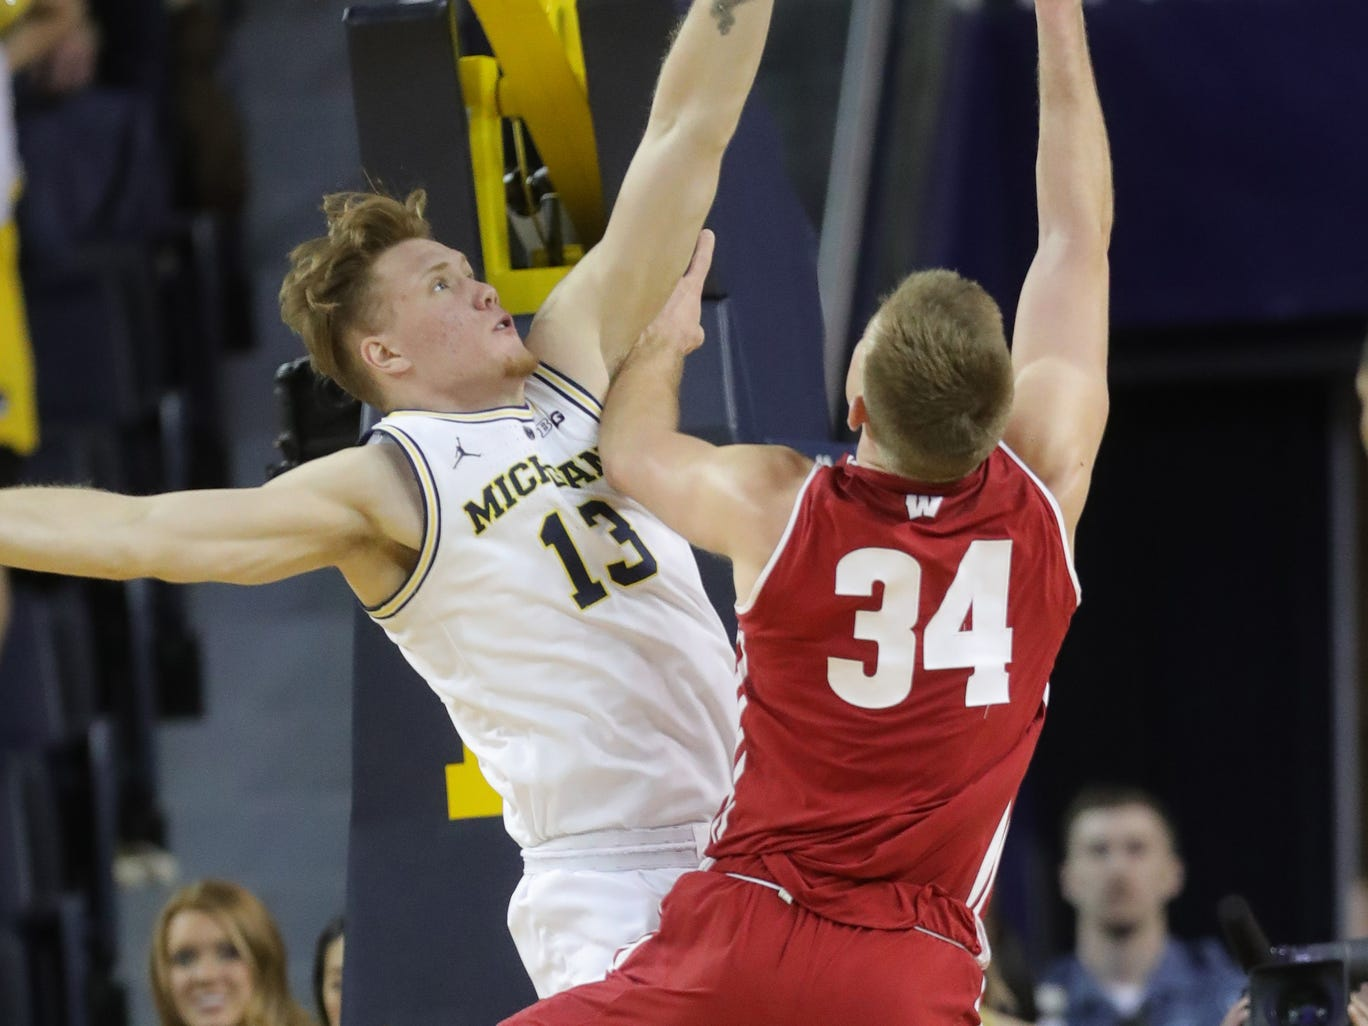 Michigan forward Ignas Brazdeikis defends Wisconsin forward Nate Reuvers during the second half Saturday, Feb. 9, 2019 at Crisler Center.